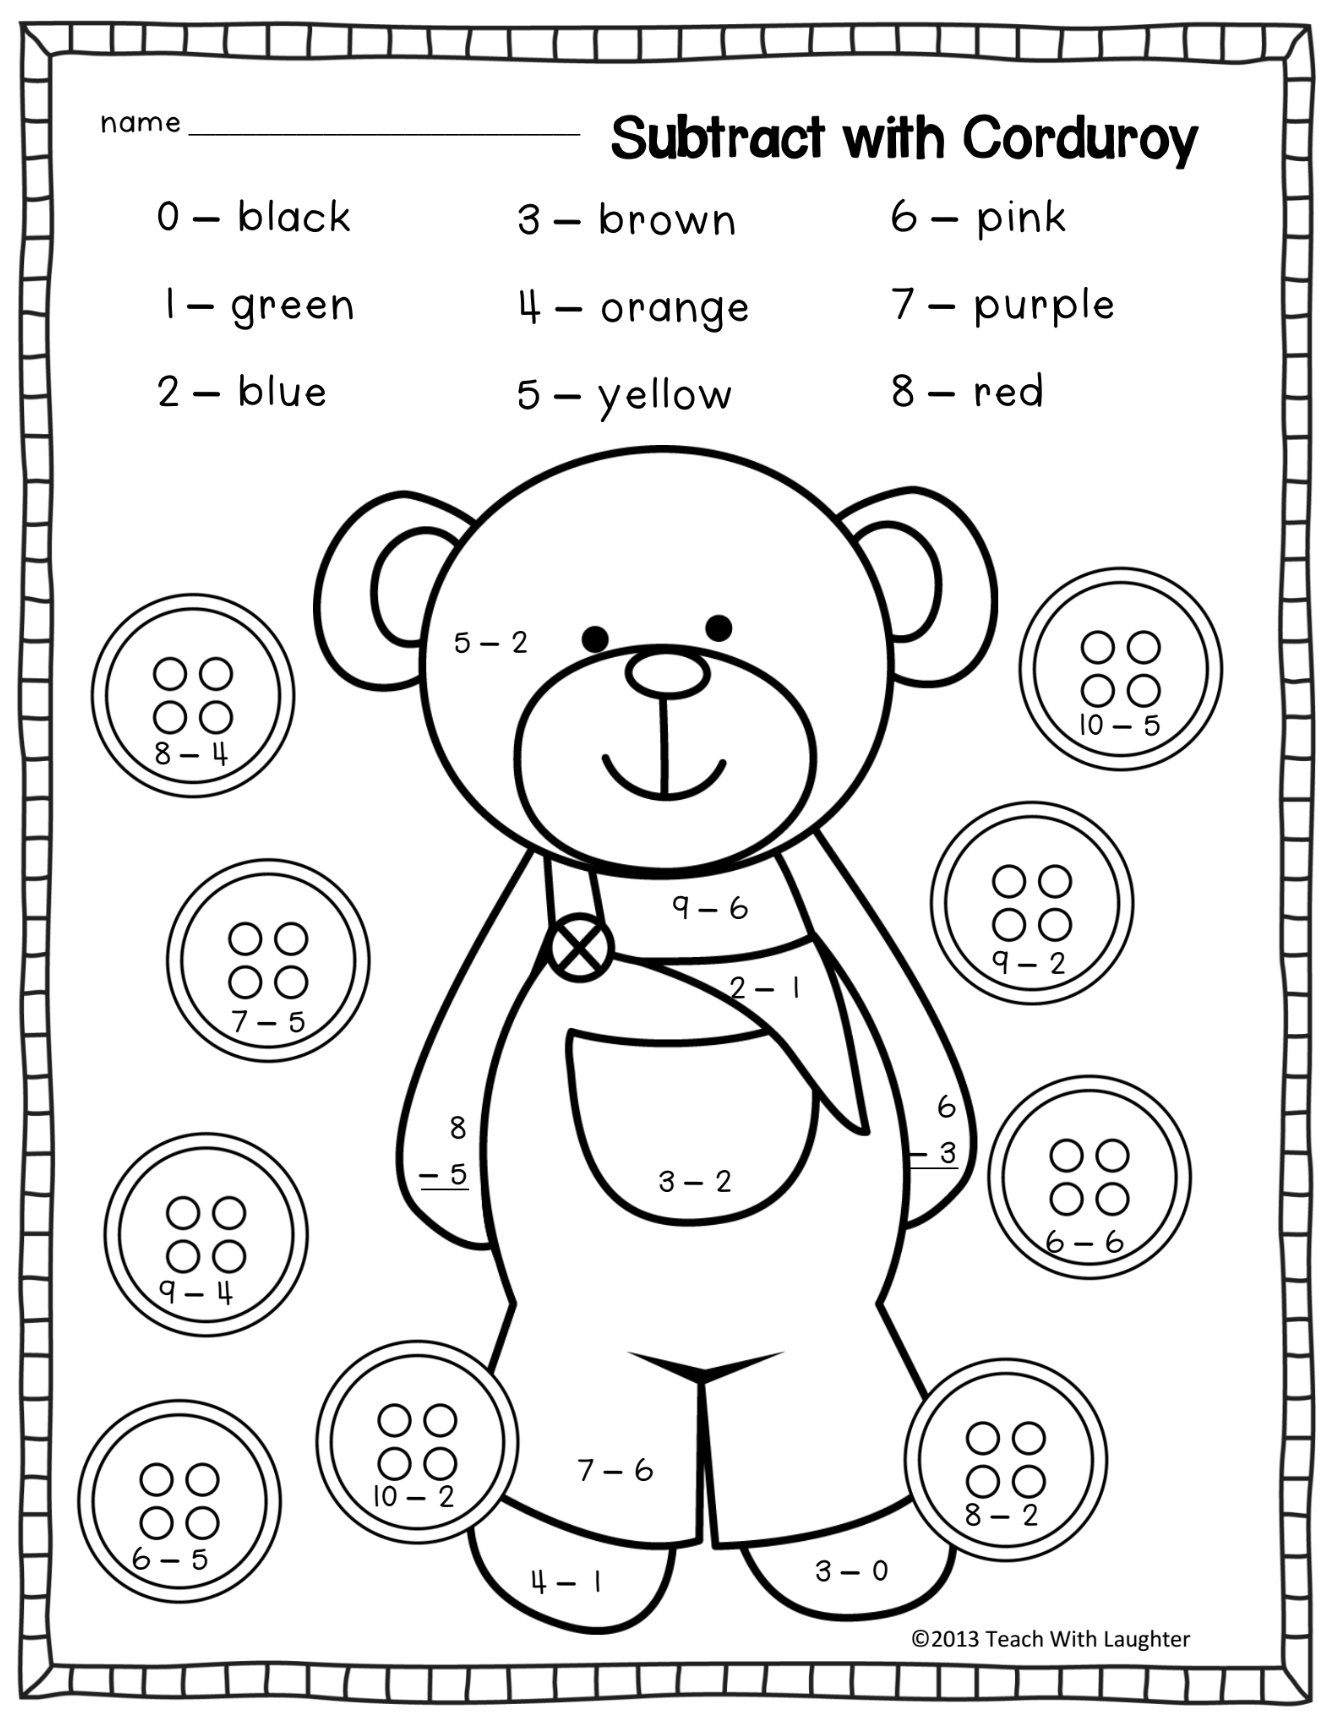 Subtract with corduroy - color by subtraction teddy bear | Teddy ...